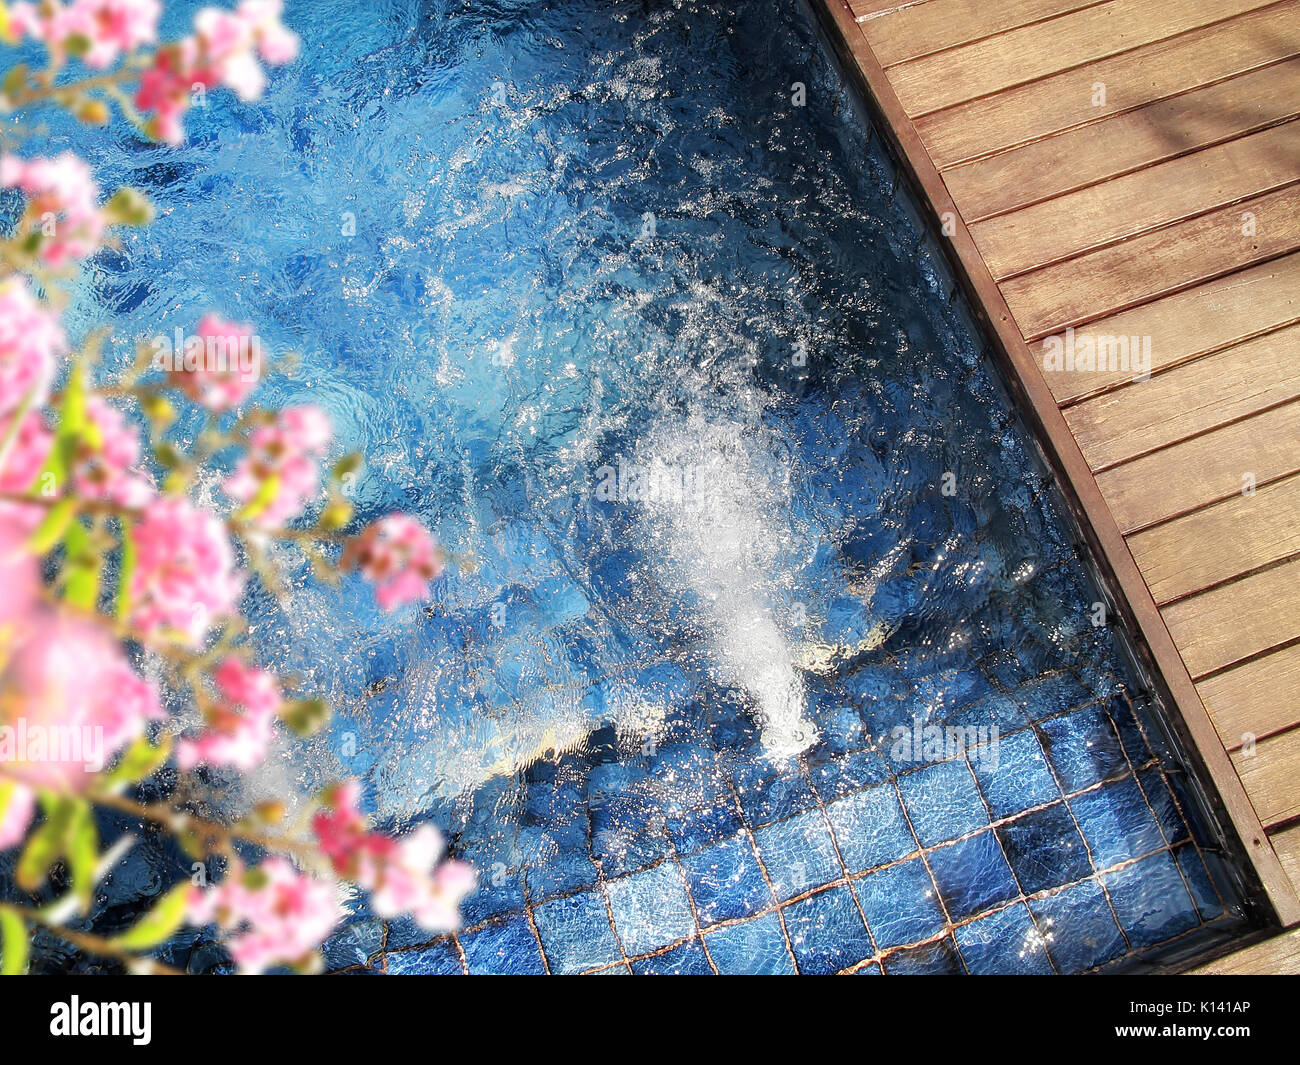 close up outdoor jacuzzi with clear clean water - Stock Image